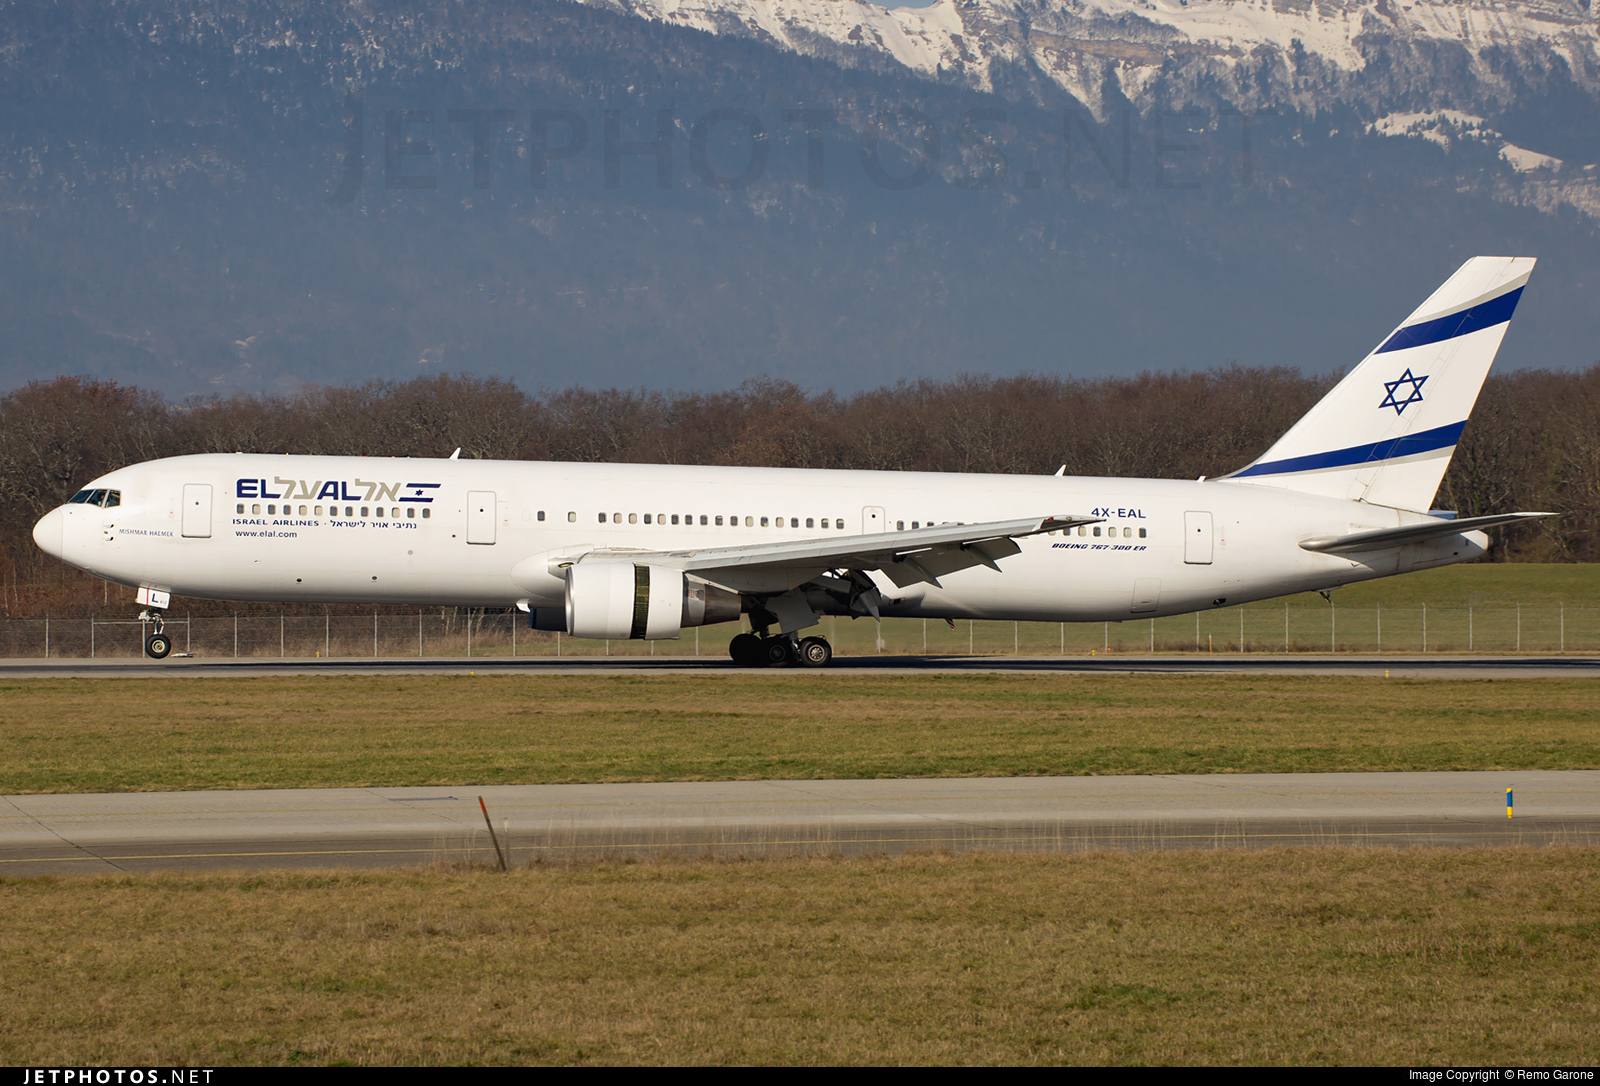 Photo of 4X-EAL Boeing 767-33A(ER) by Remo Garone